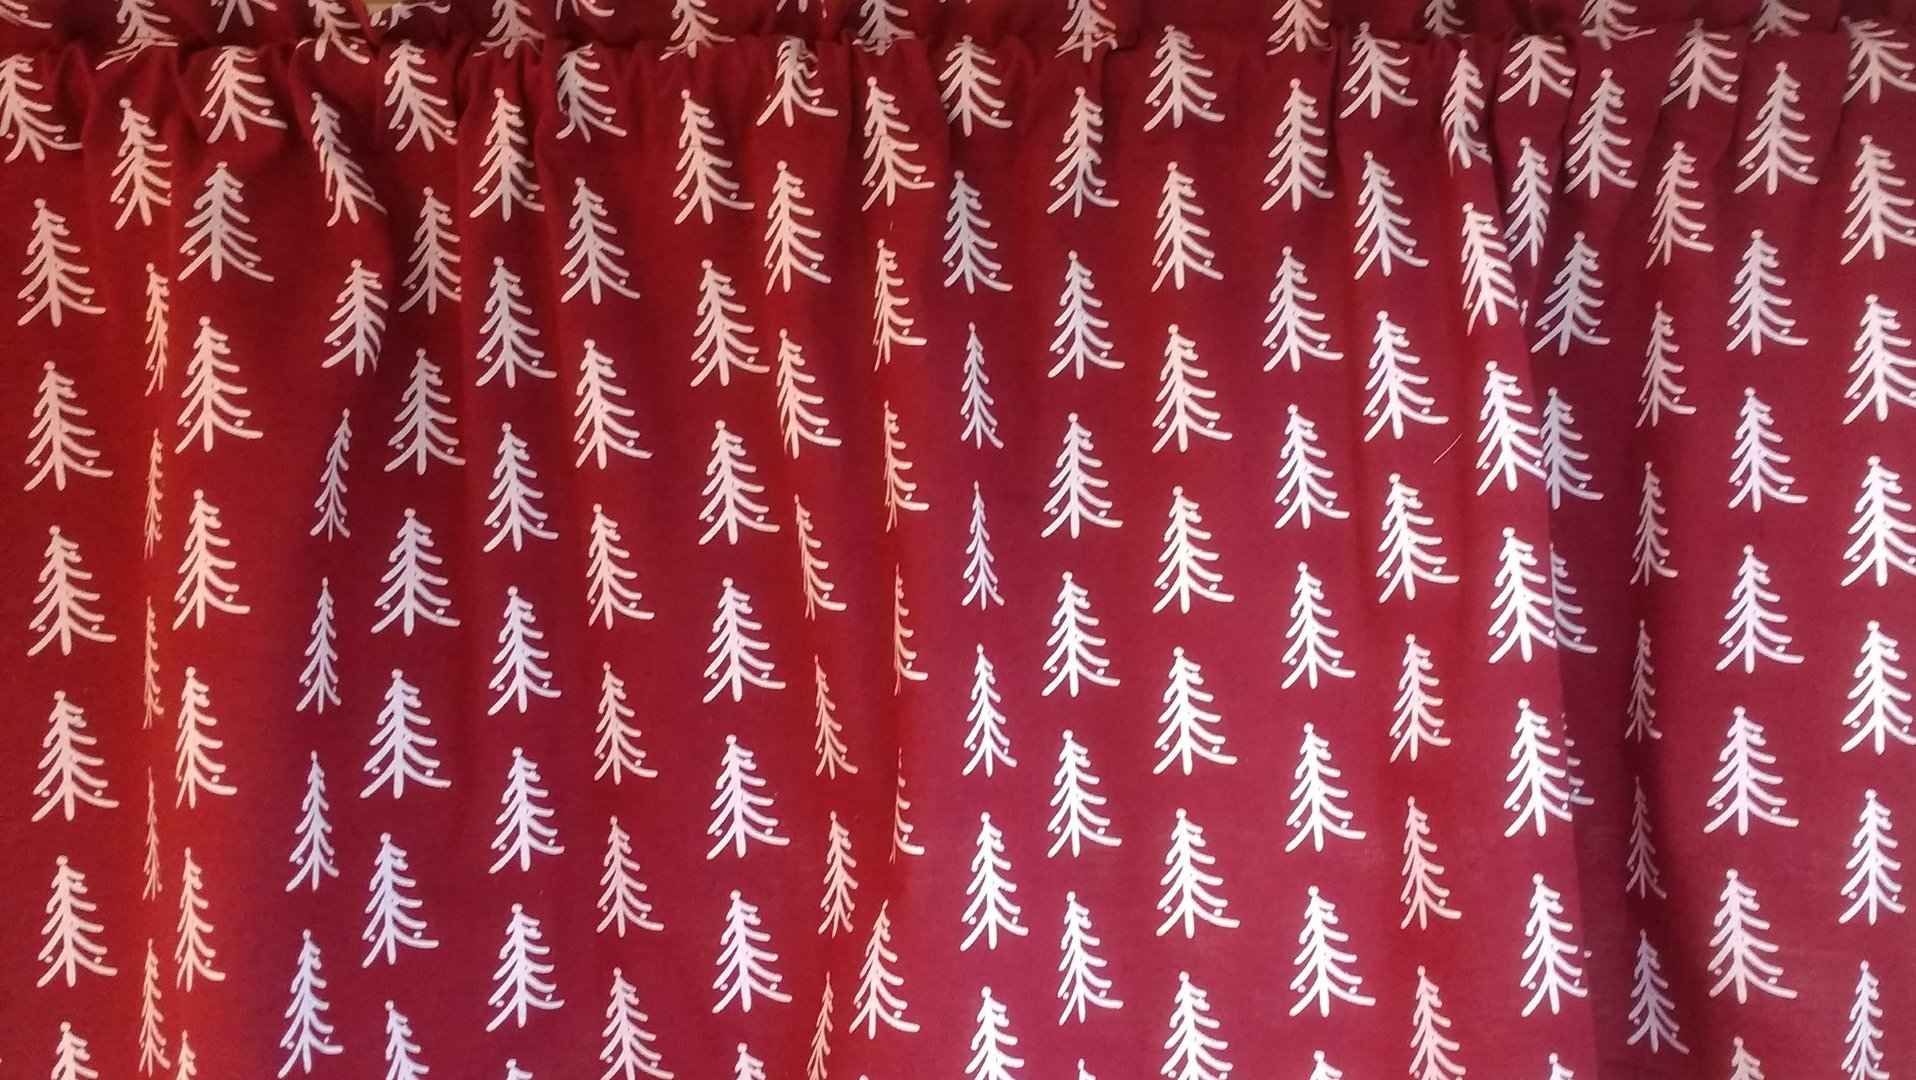 Low burgundy curtain fabric